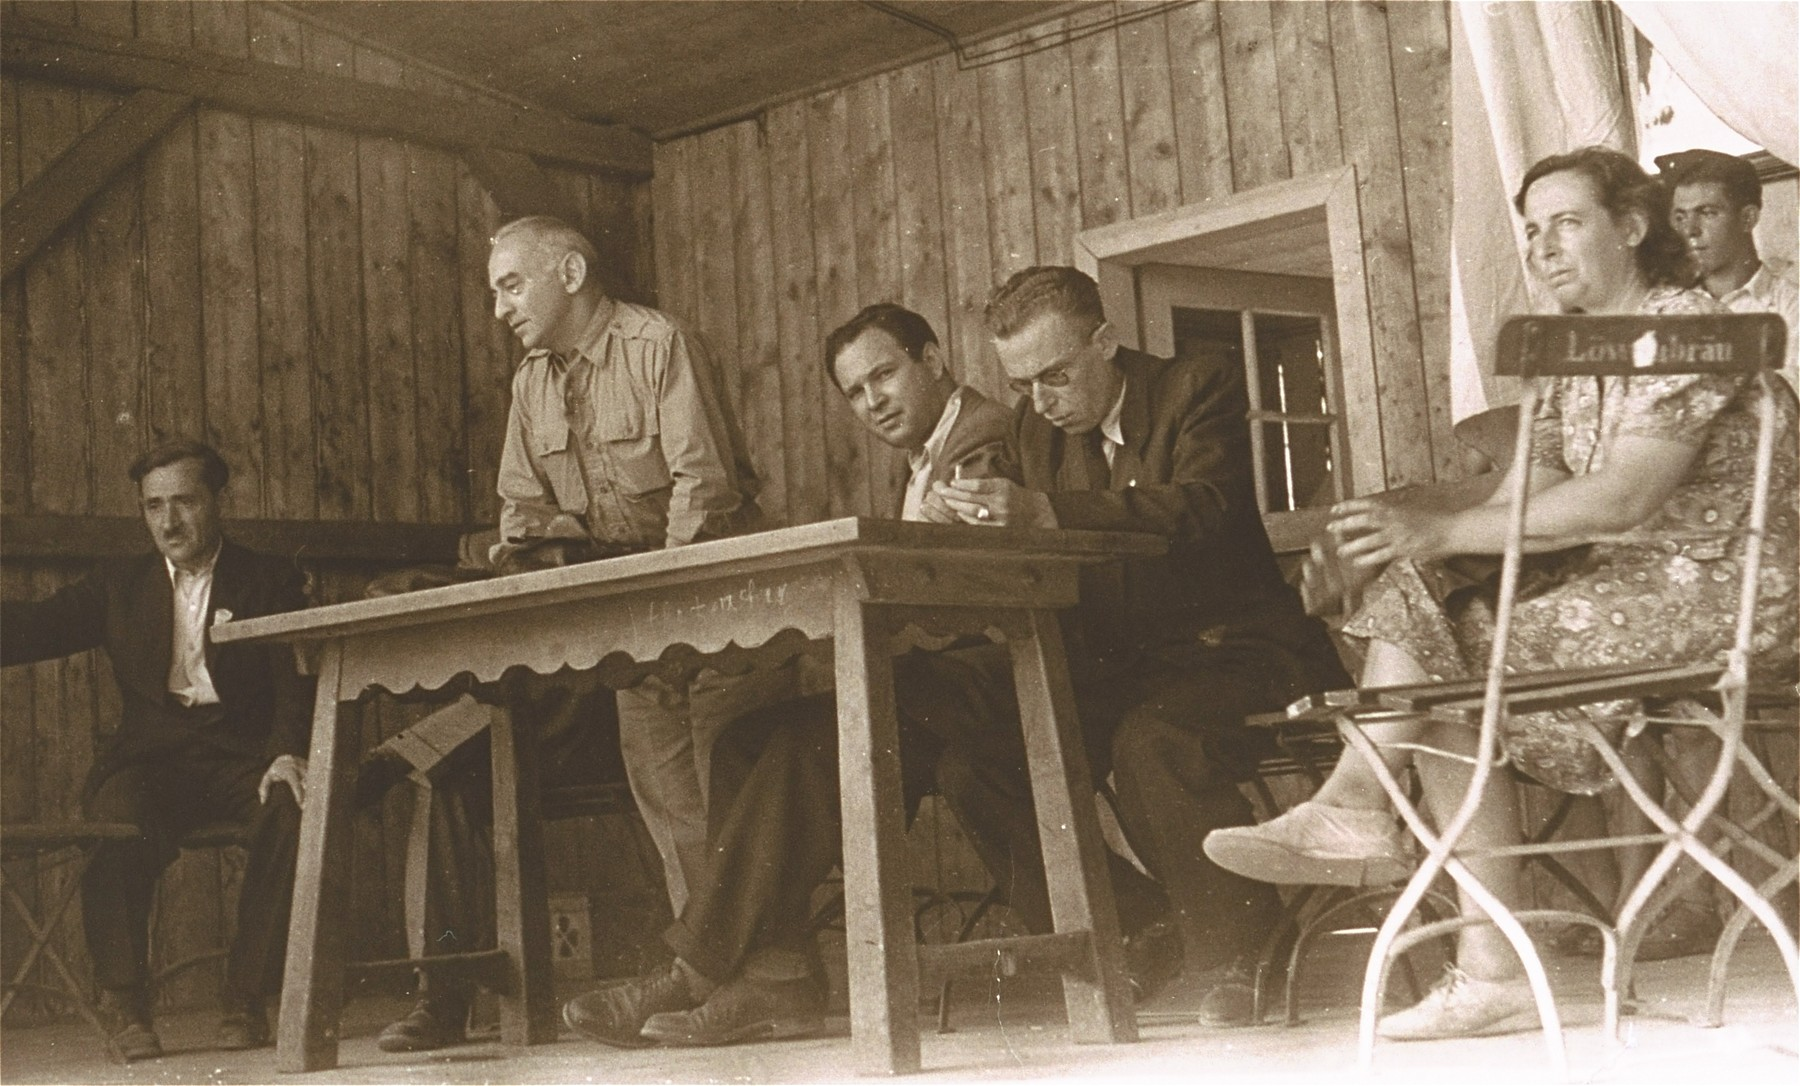 Saul Sorrin (third from left) shares the dais with the editor of the camp newspaper during a meeting at the Neu Freimann displaced persons camp.